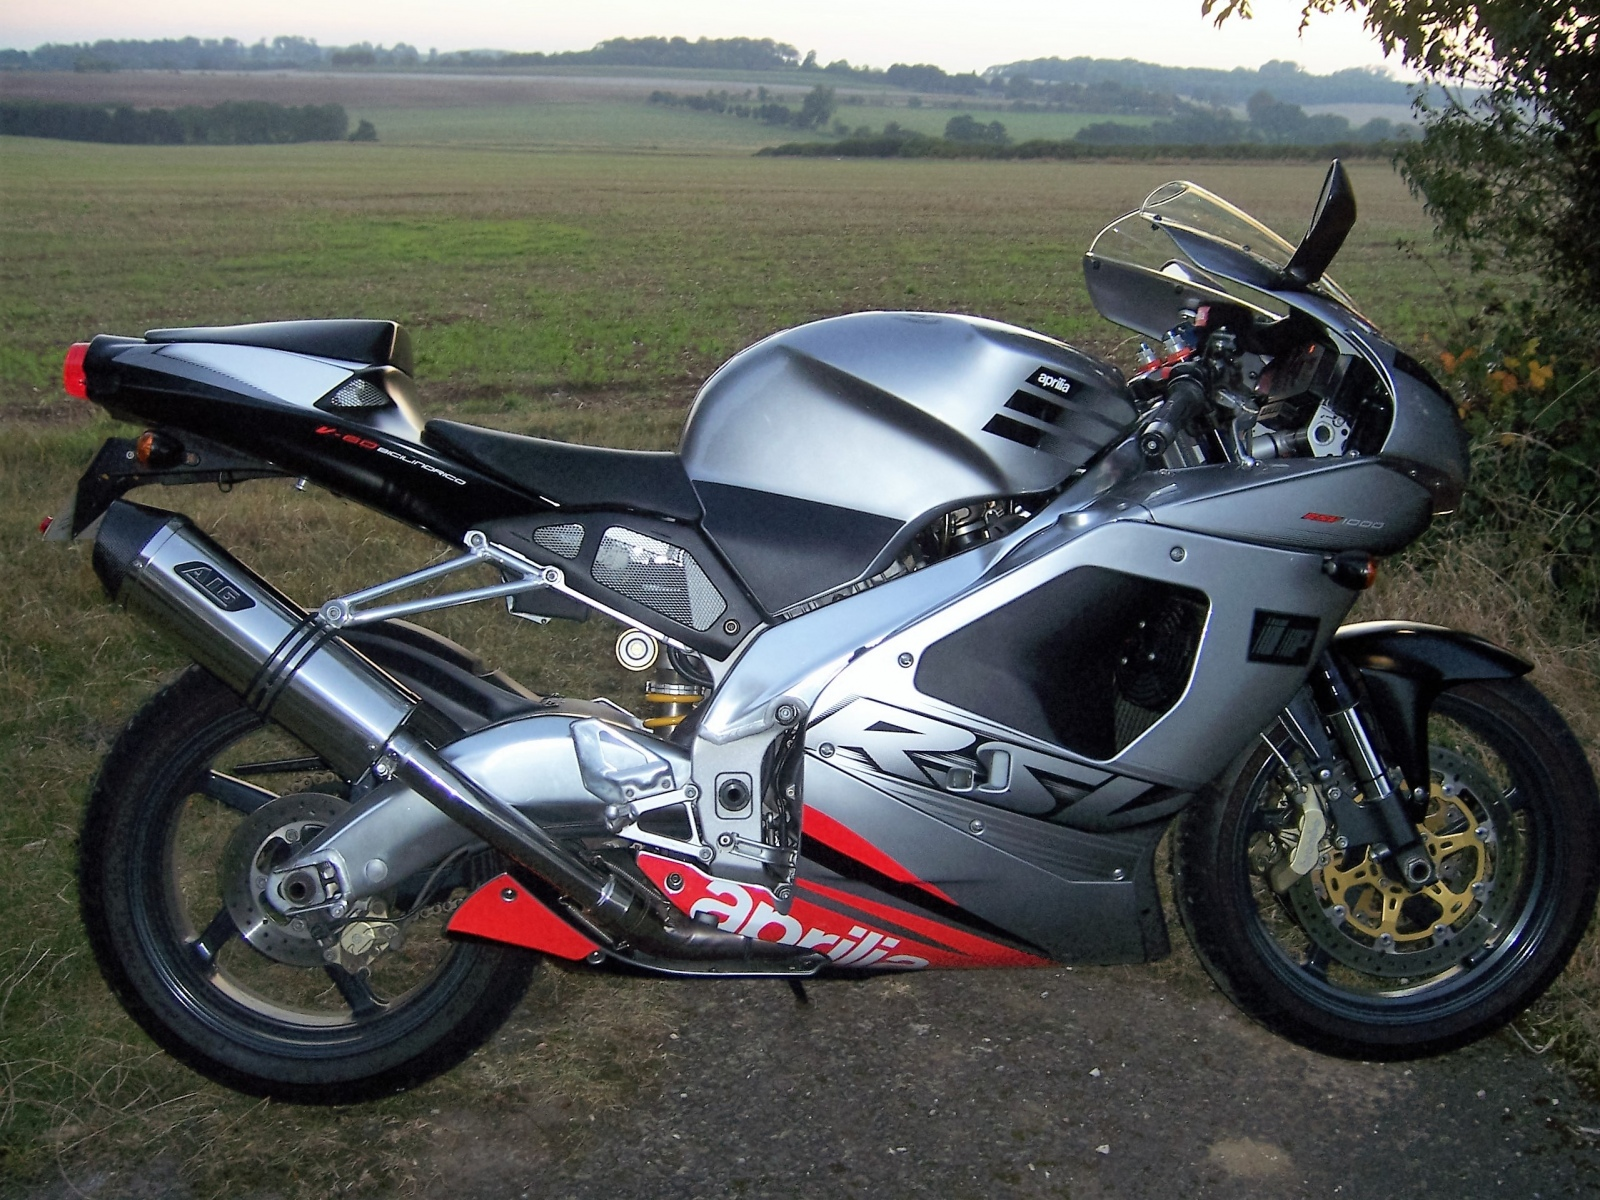 """Aprilia RSV 1000 Mille  1998-2004<p>A16 Stainless Road Legal Exhaust with Carbon Outlet</p><br /><br /><a href=""""https://a16roadnracesupplies.co.uk/product/a16-aprilia-exhausts/"""">Buy now!</a>"""